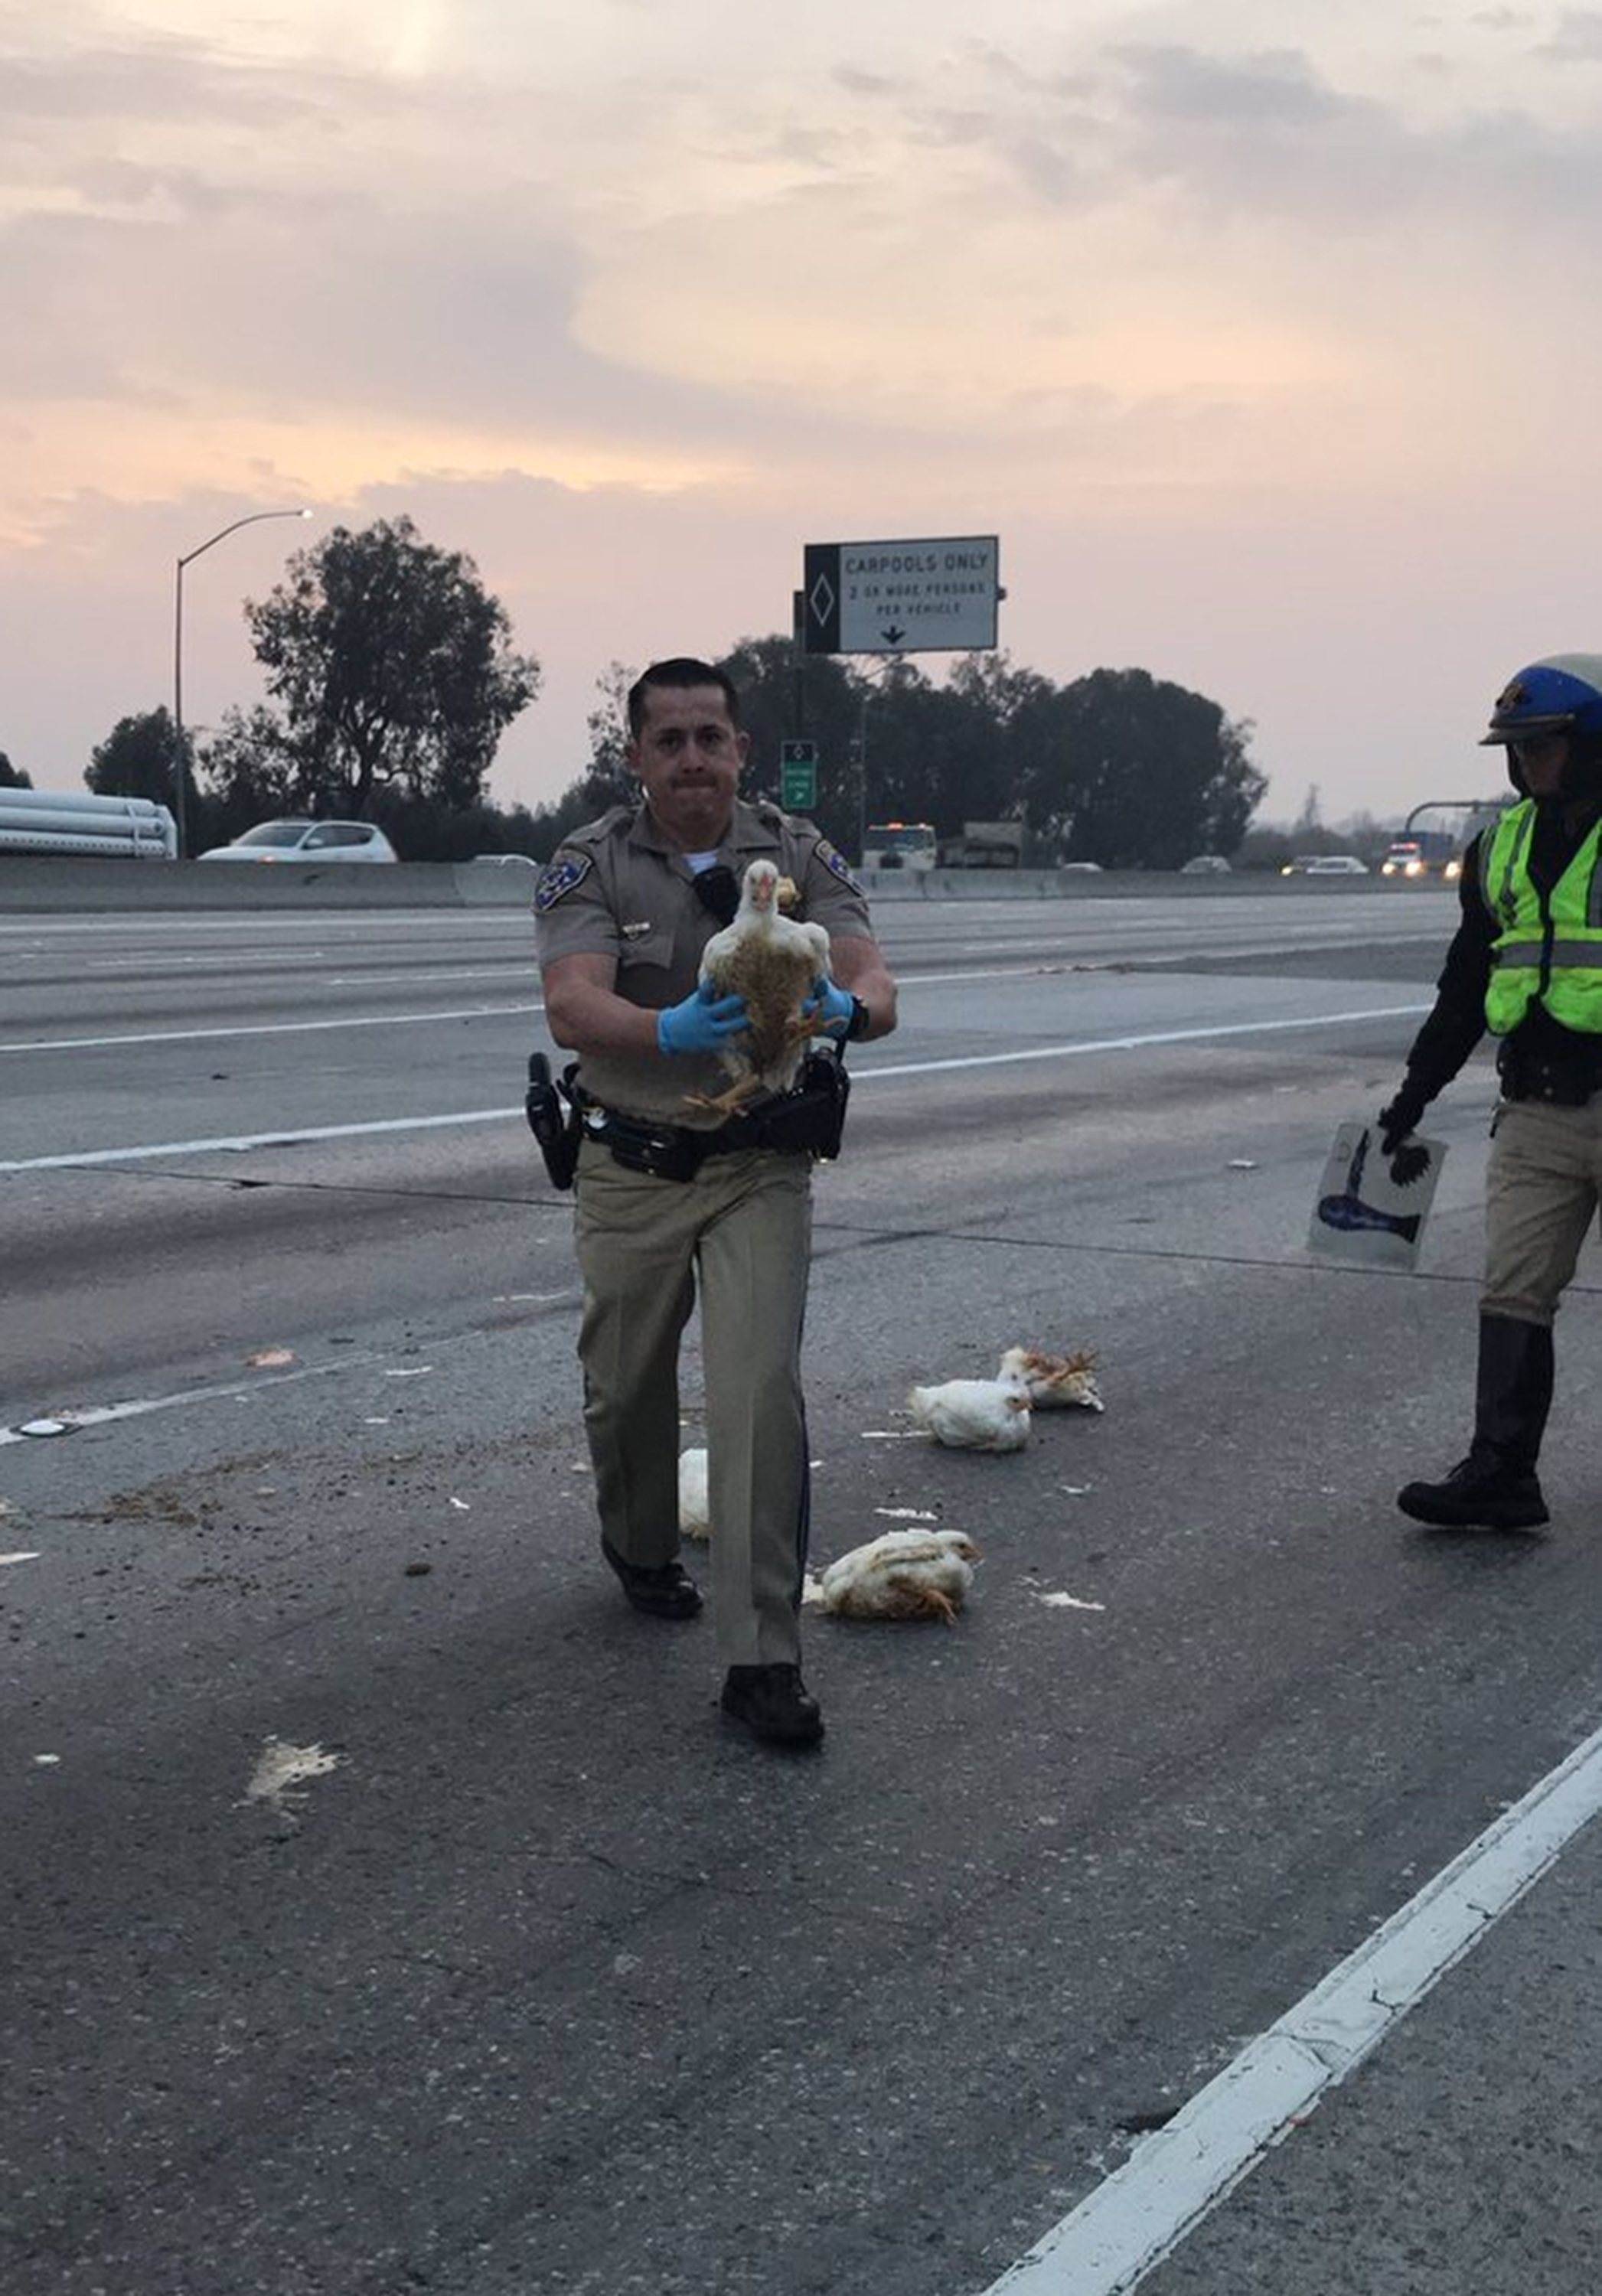 In this photo released by the California Highway Patrol, CHP officer DaSilva rescues nearly 20 chickens that ran through highway lanes in Norwalk, Calif., Tuesday, Jan. 2, 2018. The CHP says the birds blocked a portion of Interstate 605 Tuesday morning after their cage fell from the back of a truck. (CHP Officer C.Lillie/California Highway Patrol via AP)